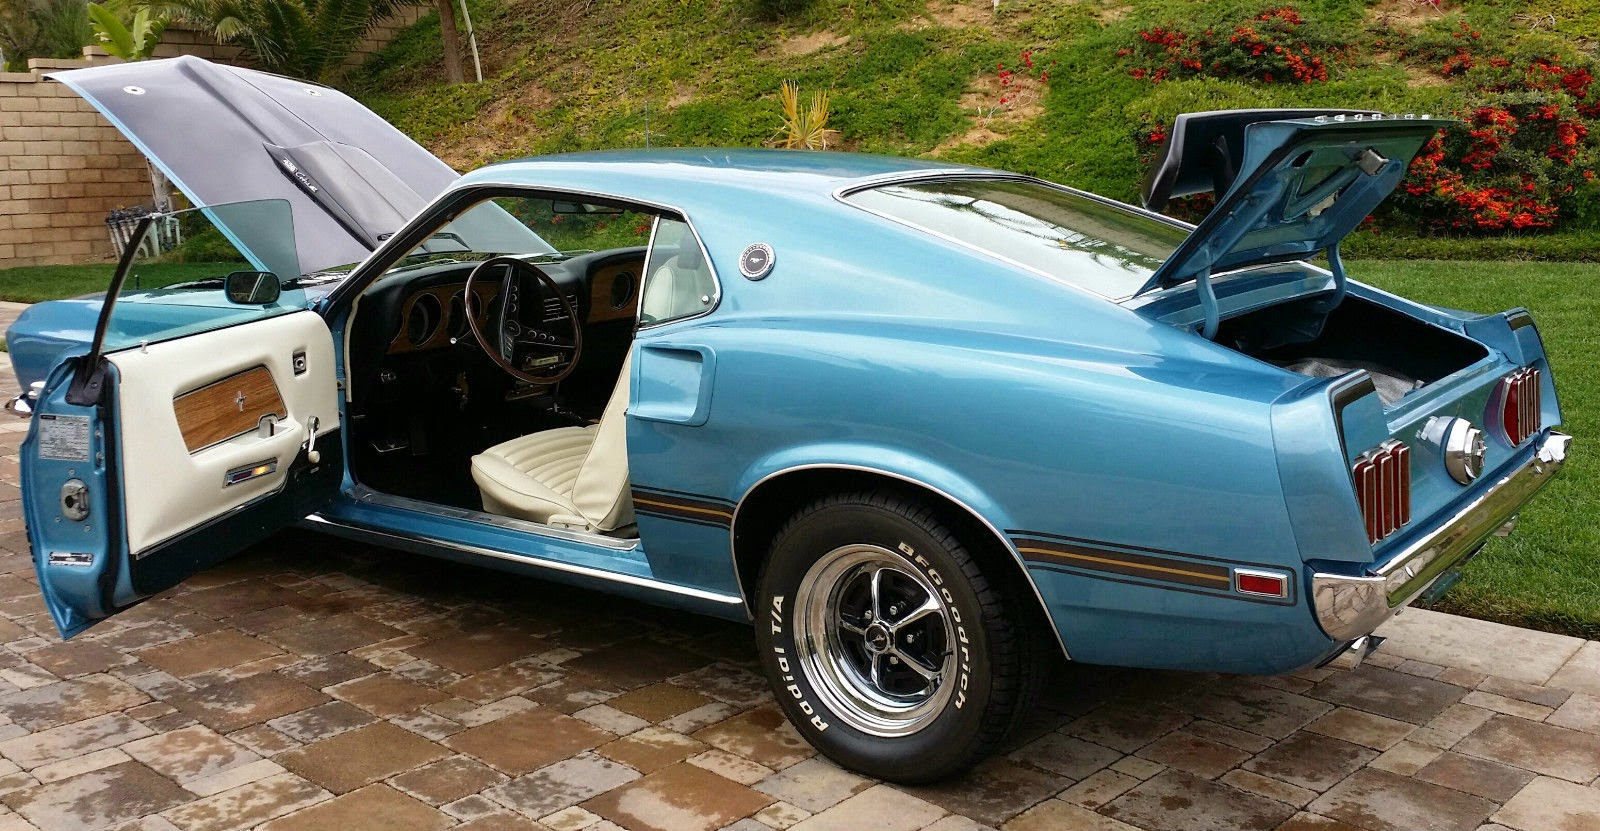 1969 ford mustang mach 1 cobra jet ~ for sale american muscle carsfor sale american muscle cars